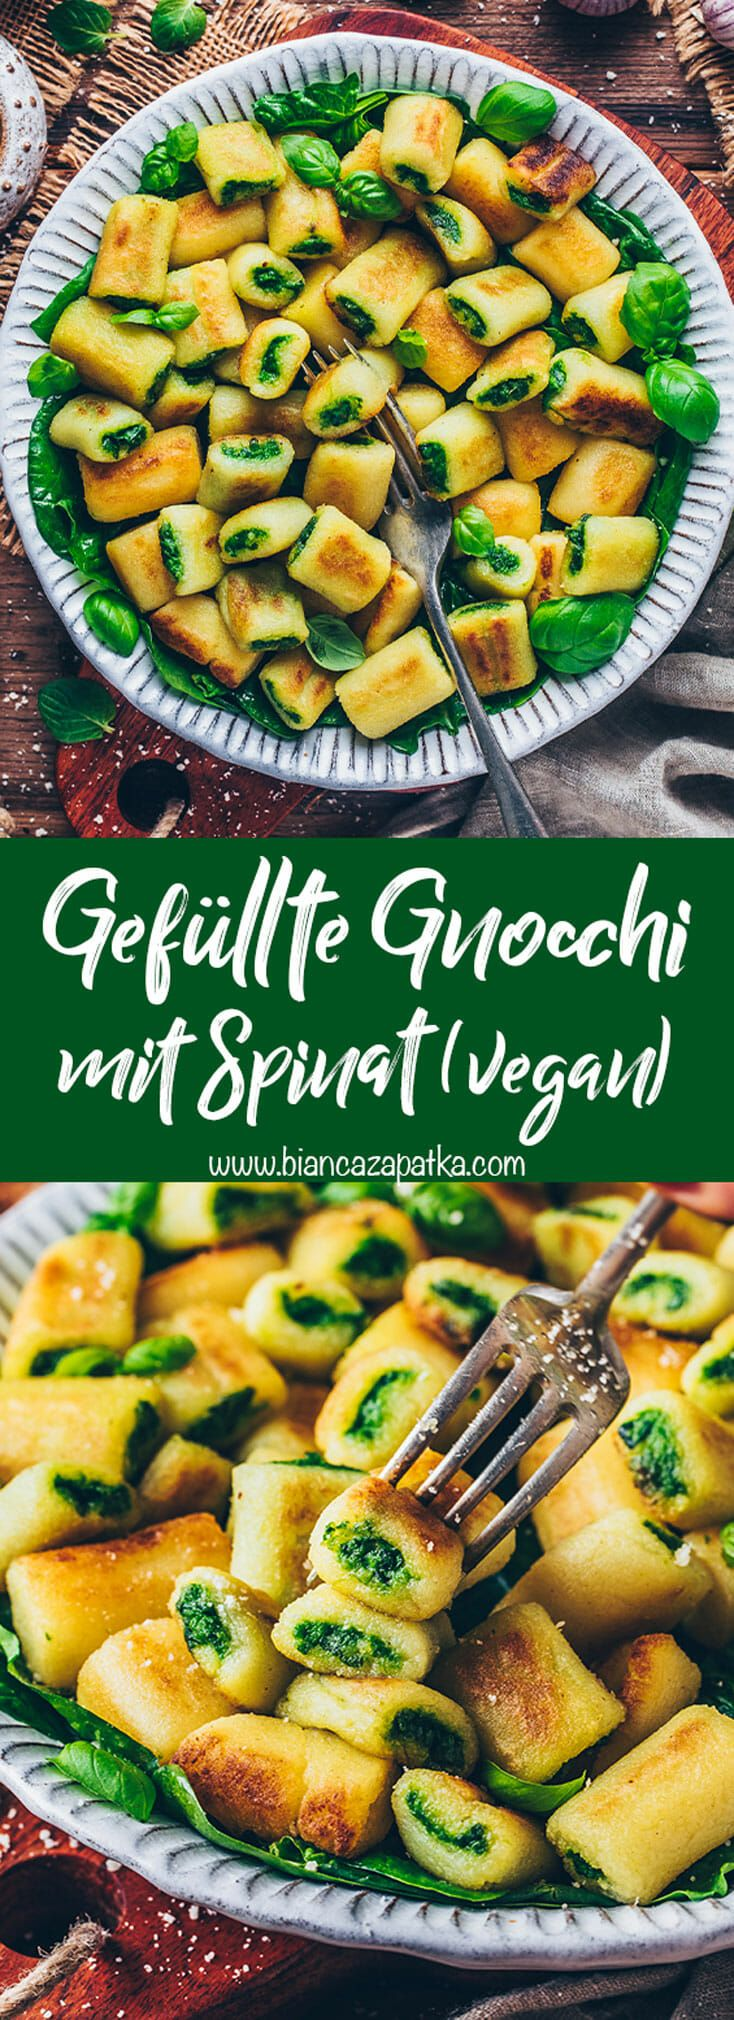 Photo of Stuffed gnocchi with spinach pesto Vegan – Bianca Zapatka | Recipes